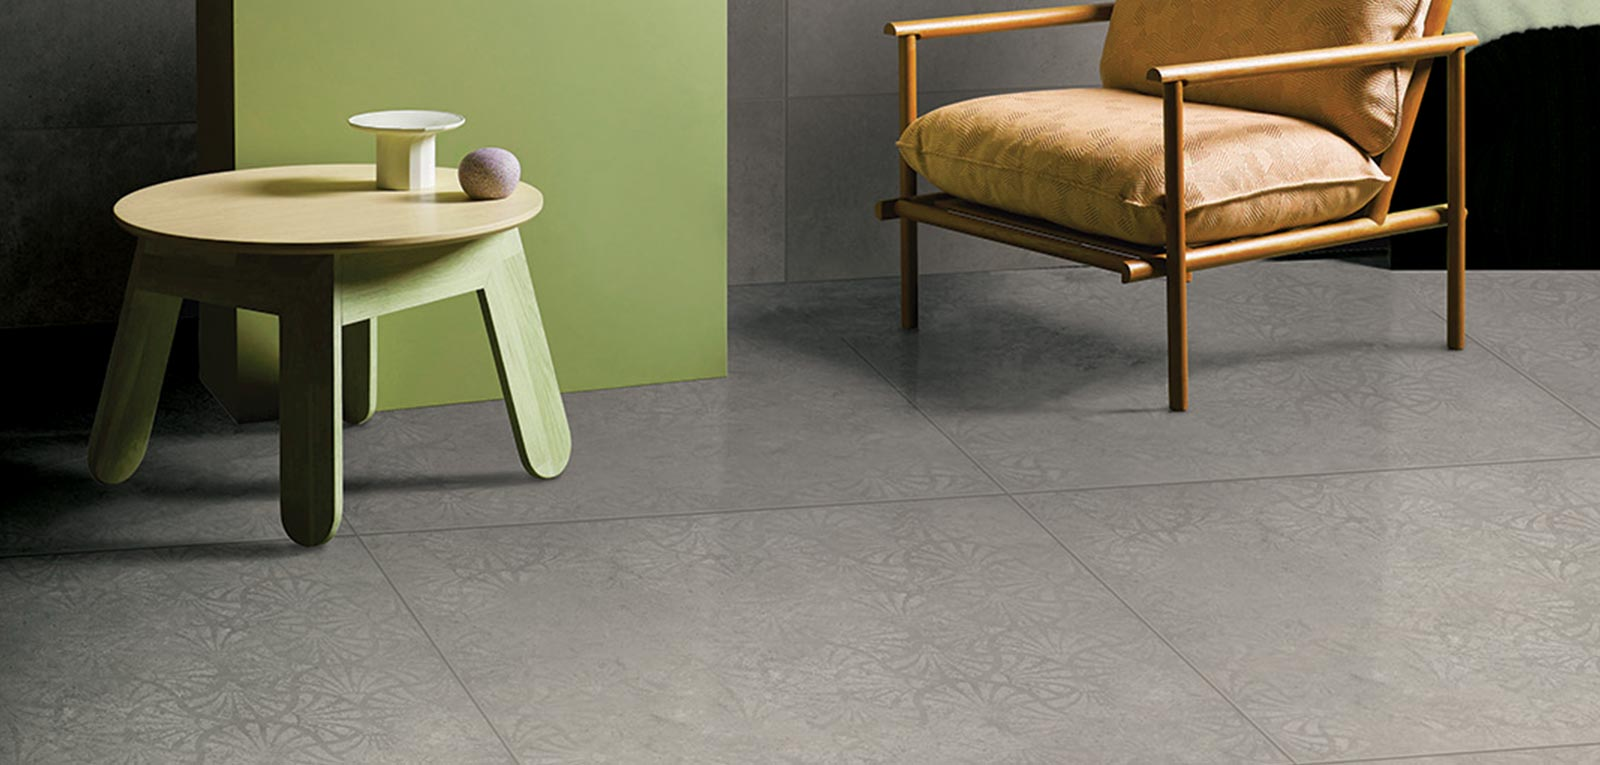 tagina-concreta-living2